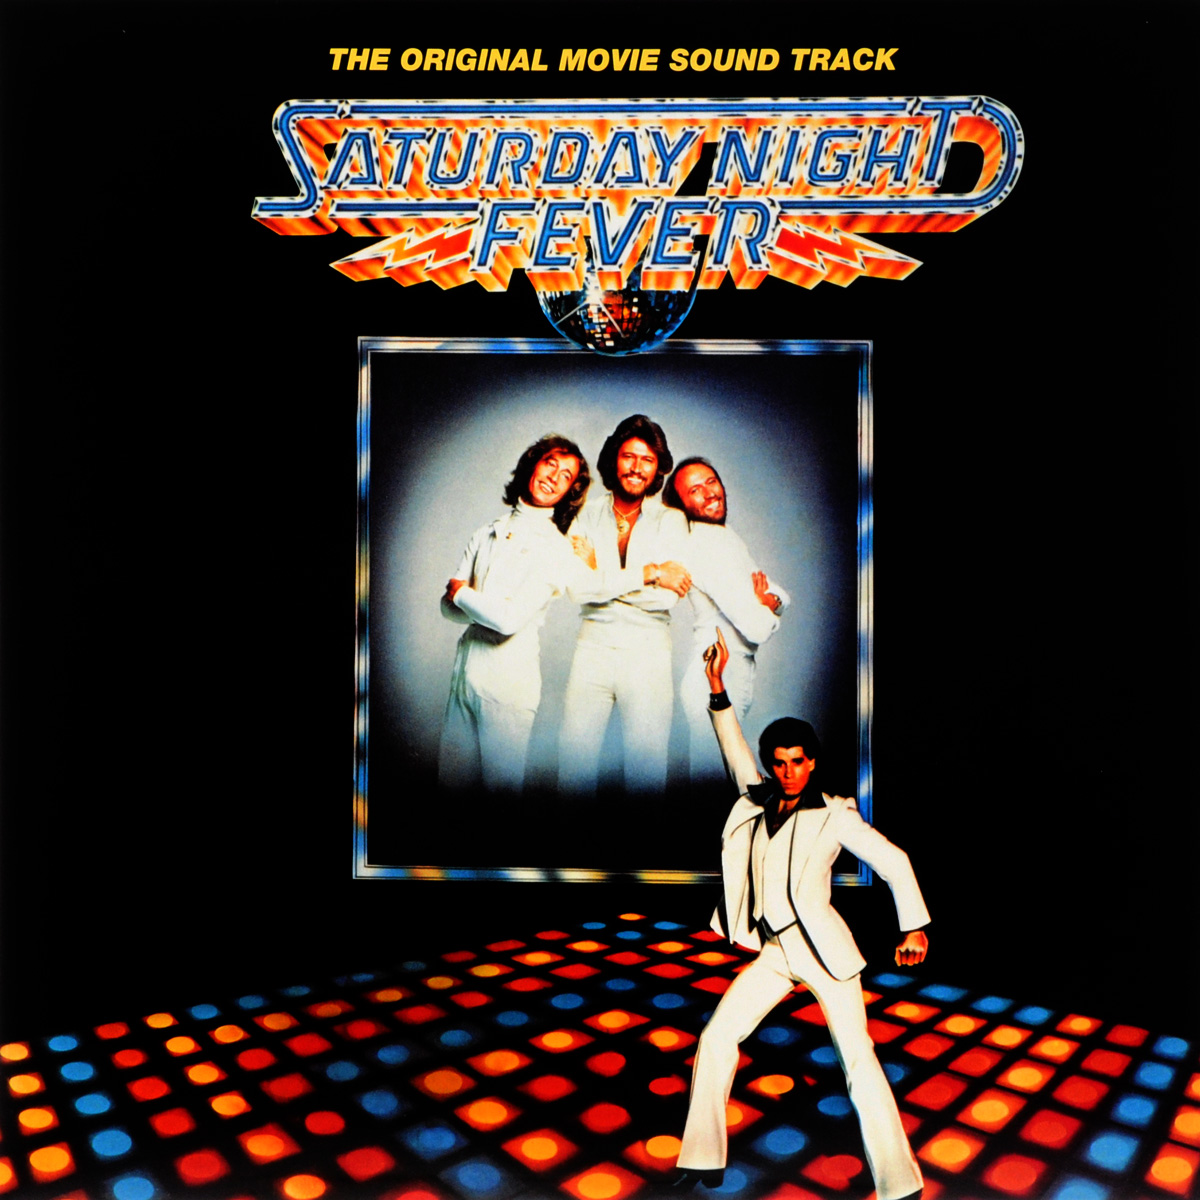 Saturday Night Fever. The Original Movie Sound Track (2 LP)